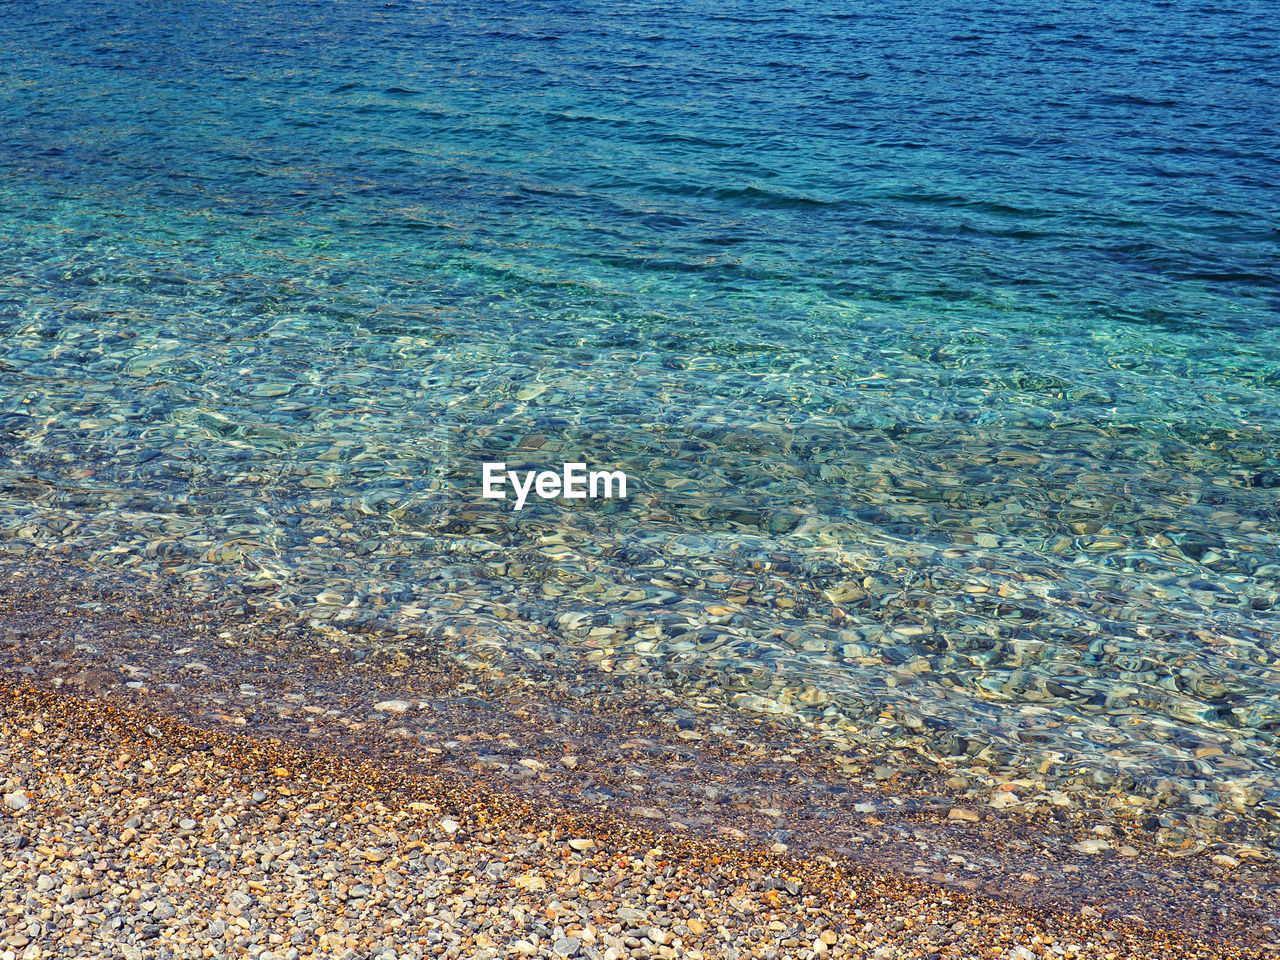 water, sea, beauty in nature, tranquility, day, no people, nature, blue, waterfront, tranquil scene, scenics - nature, land, beach, rippled, idyllic, transparent, high angle view, backgrounds, outdoors, clean, shallow, purity, turquoise colored